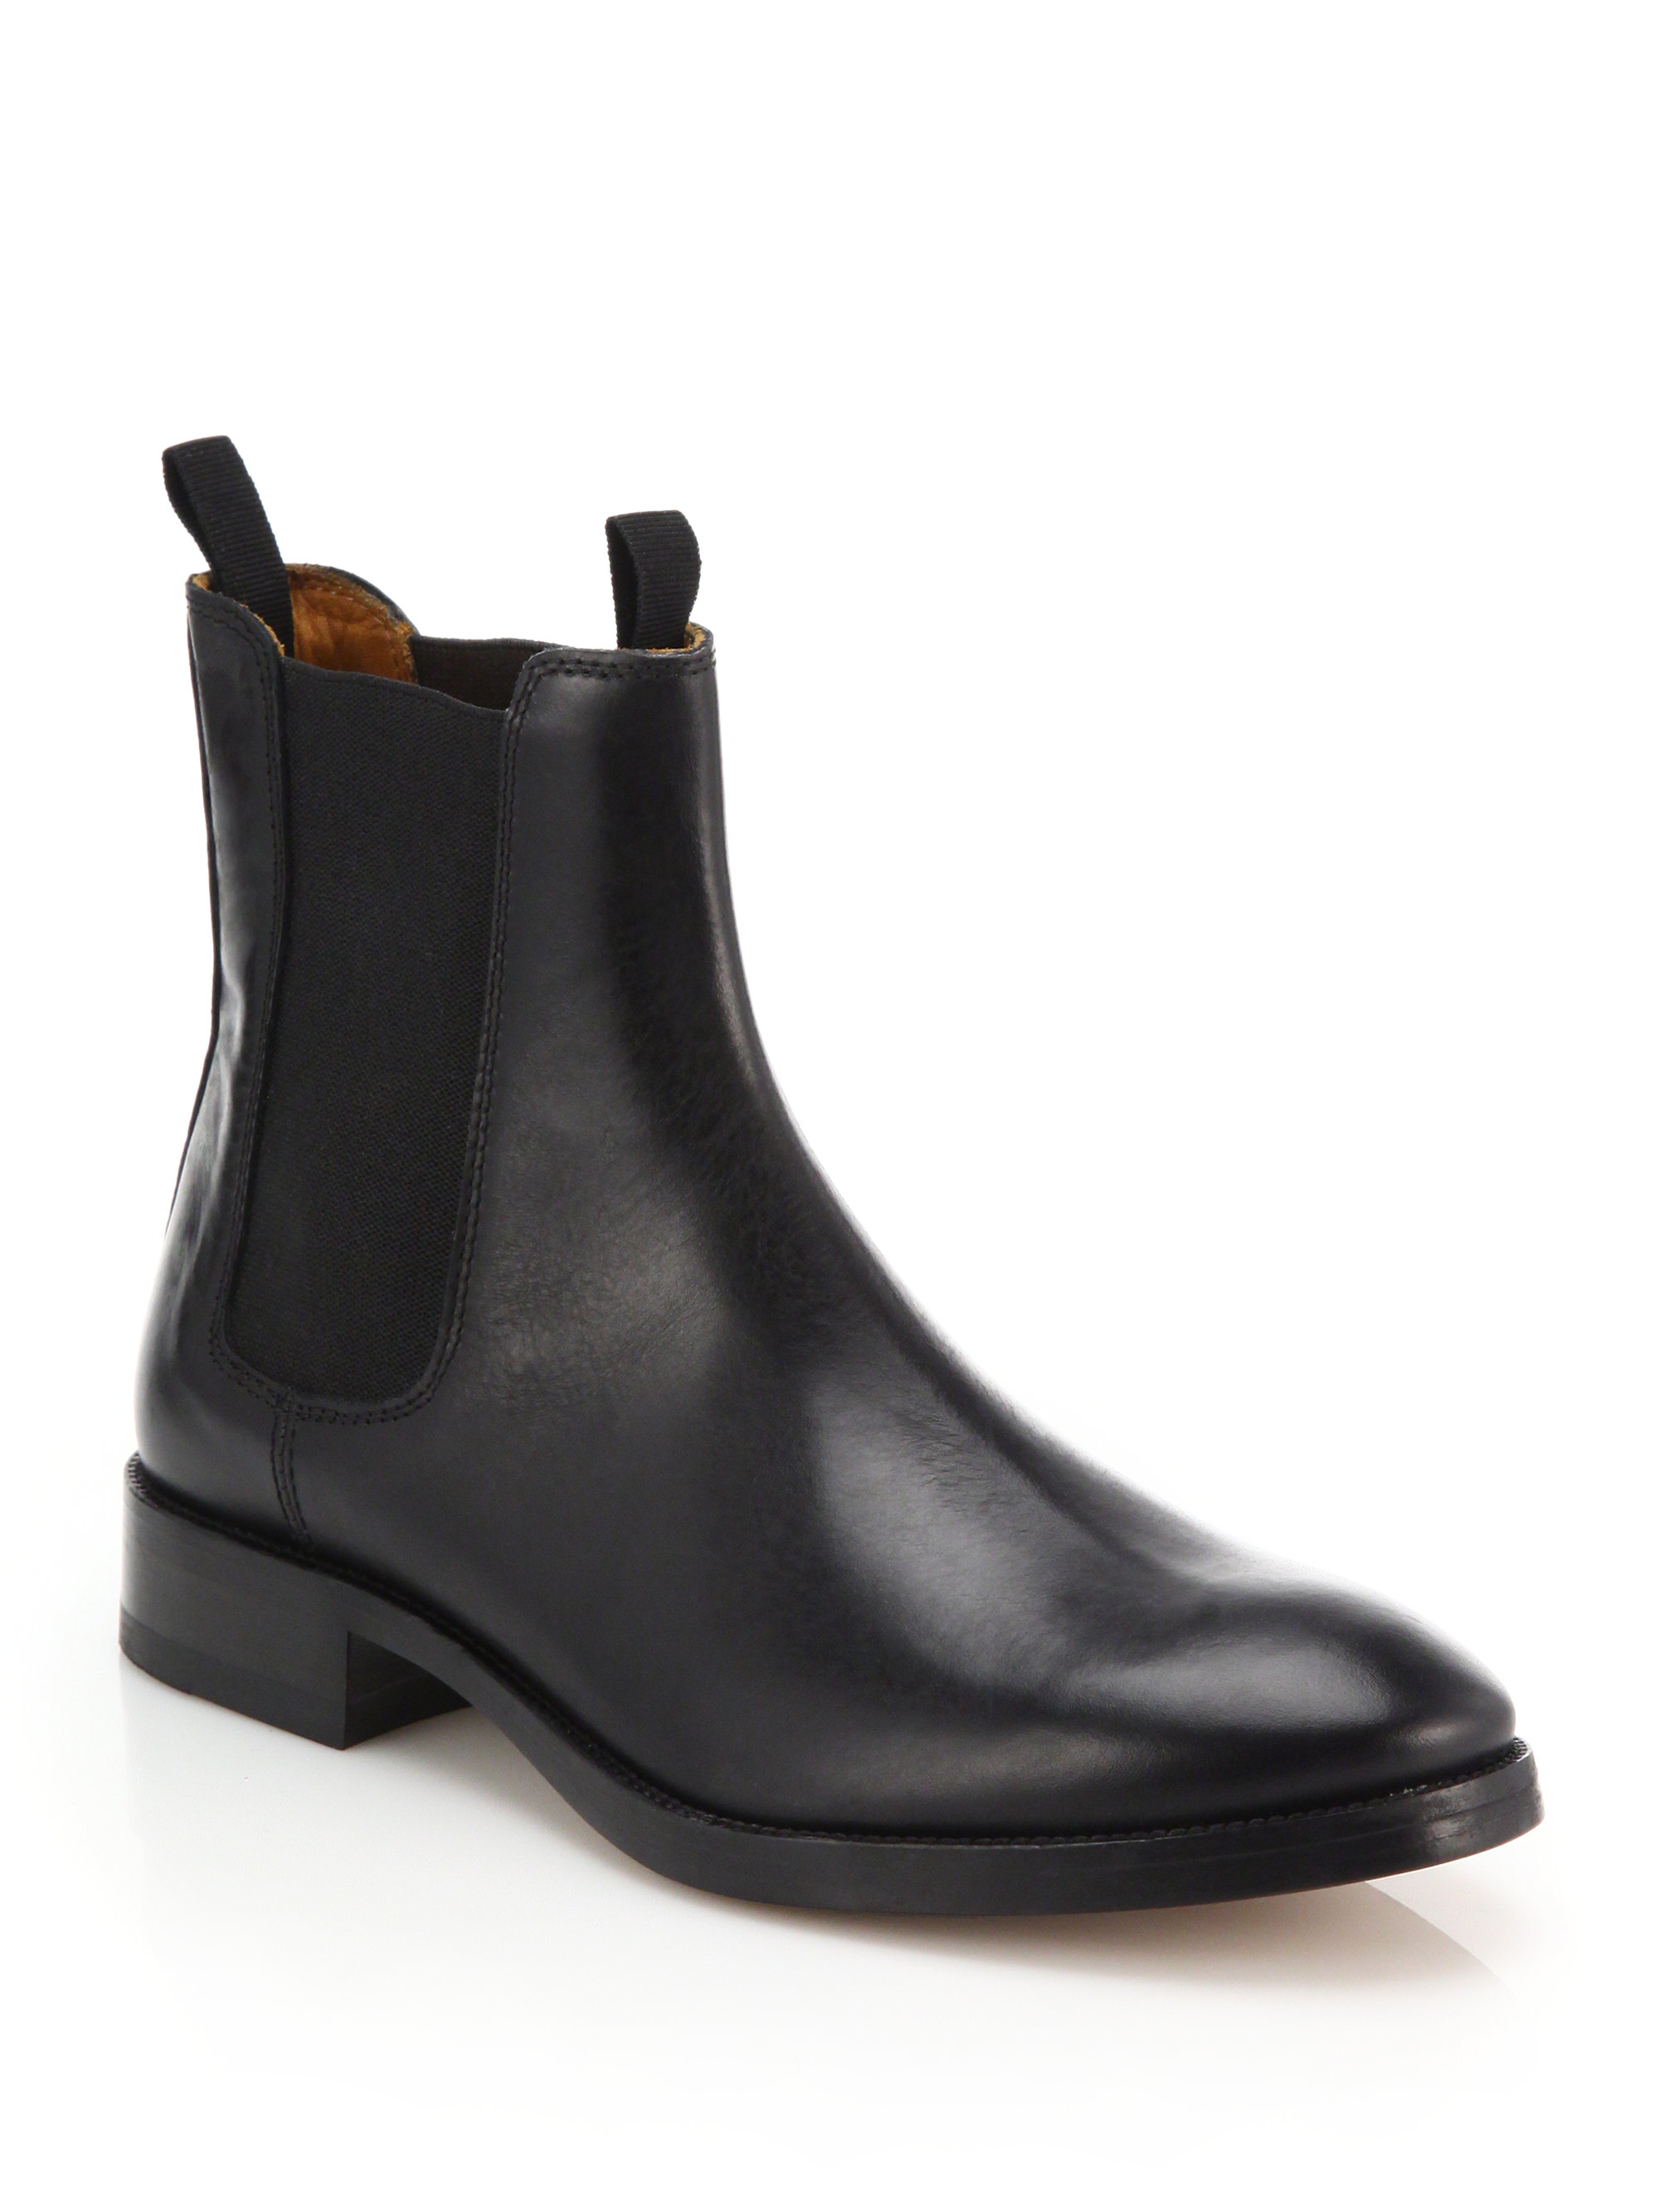 acne studios bess classic leather chelsea boots in black